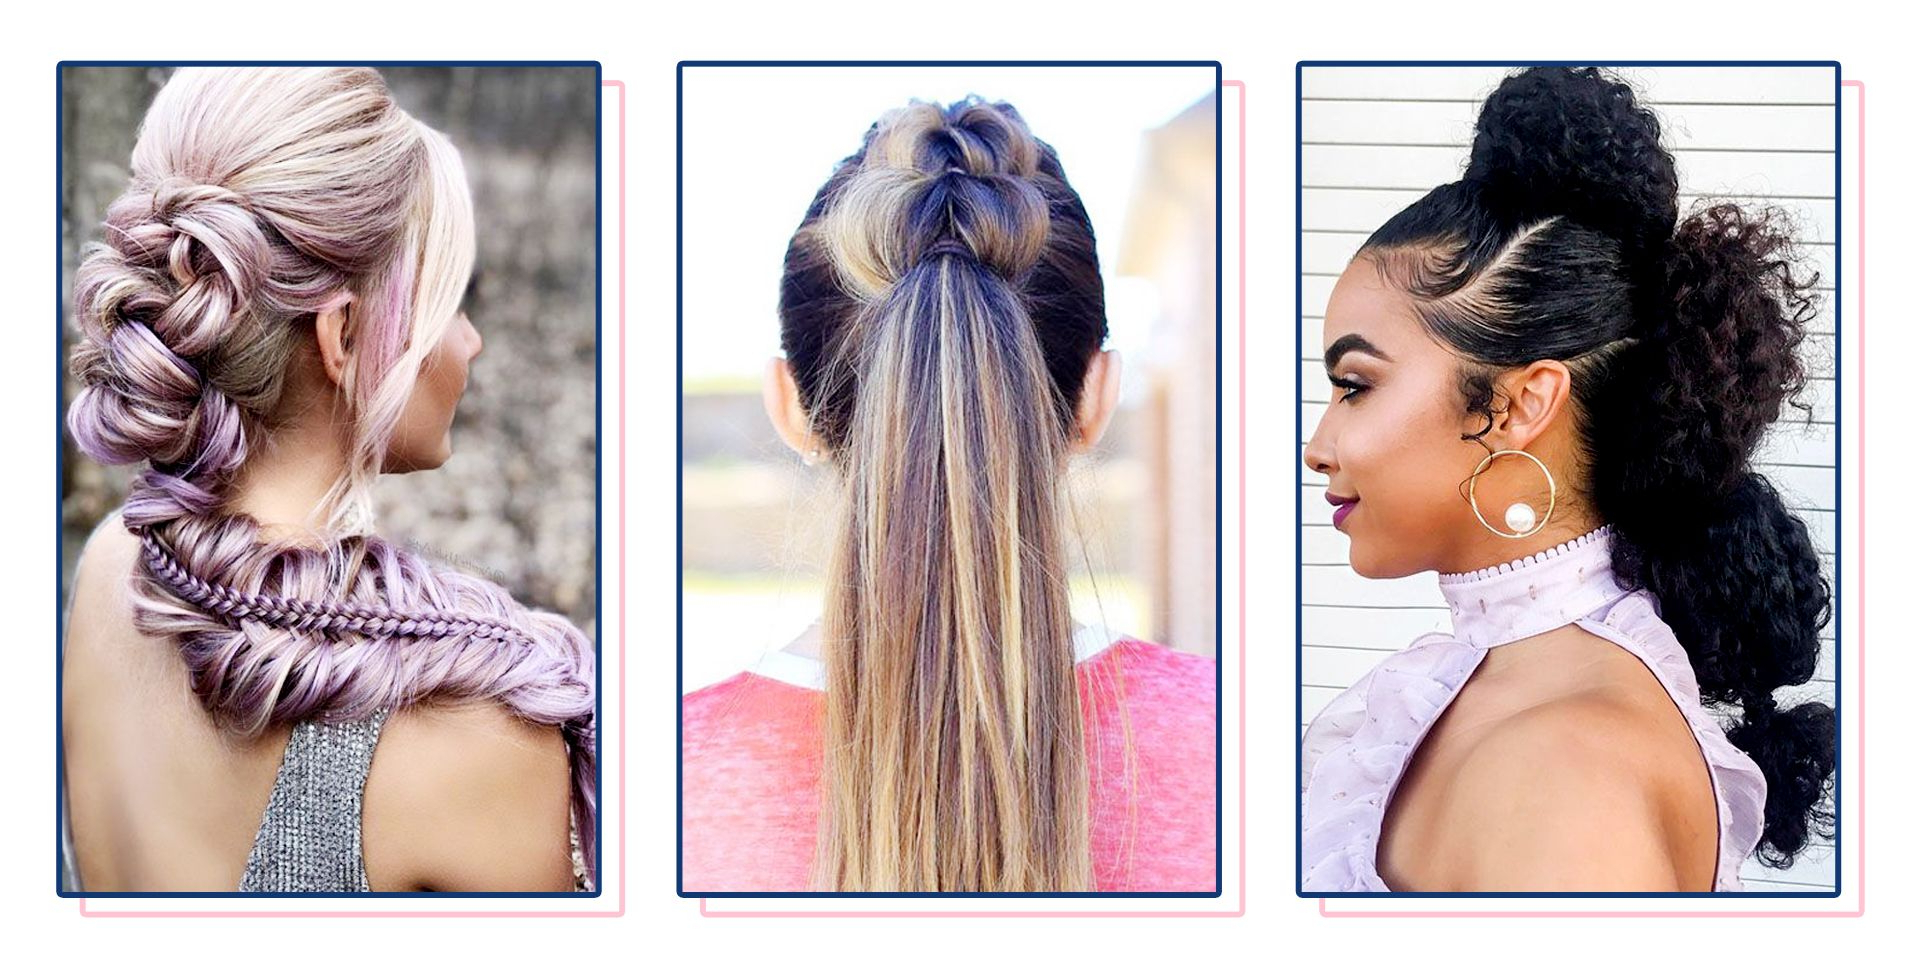 40 Best Prom Updos For 2019 – Easy Prom Updo Hairstyles Within Trendy Easy Curled Prom Updos (View 12 of 20)